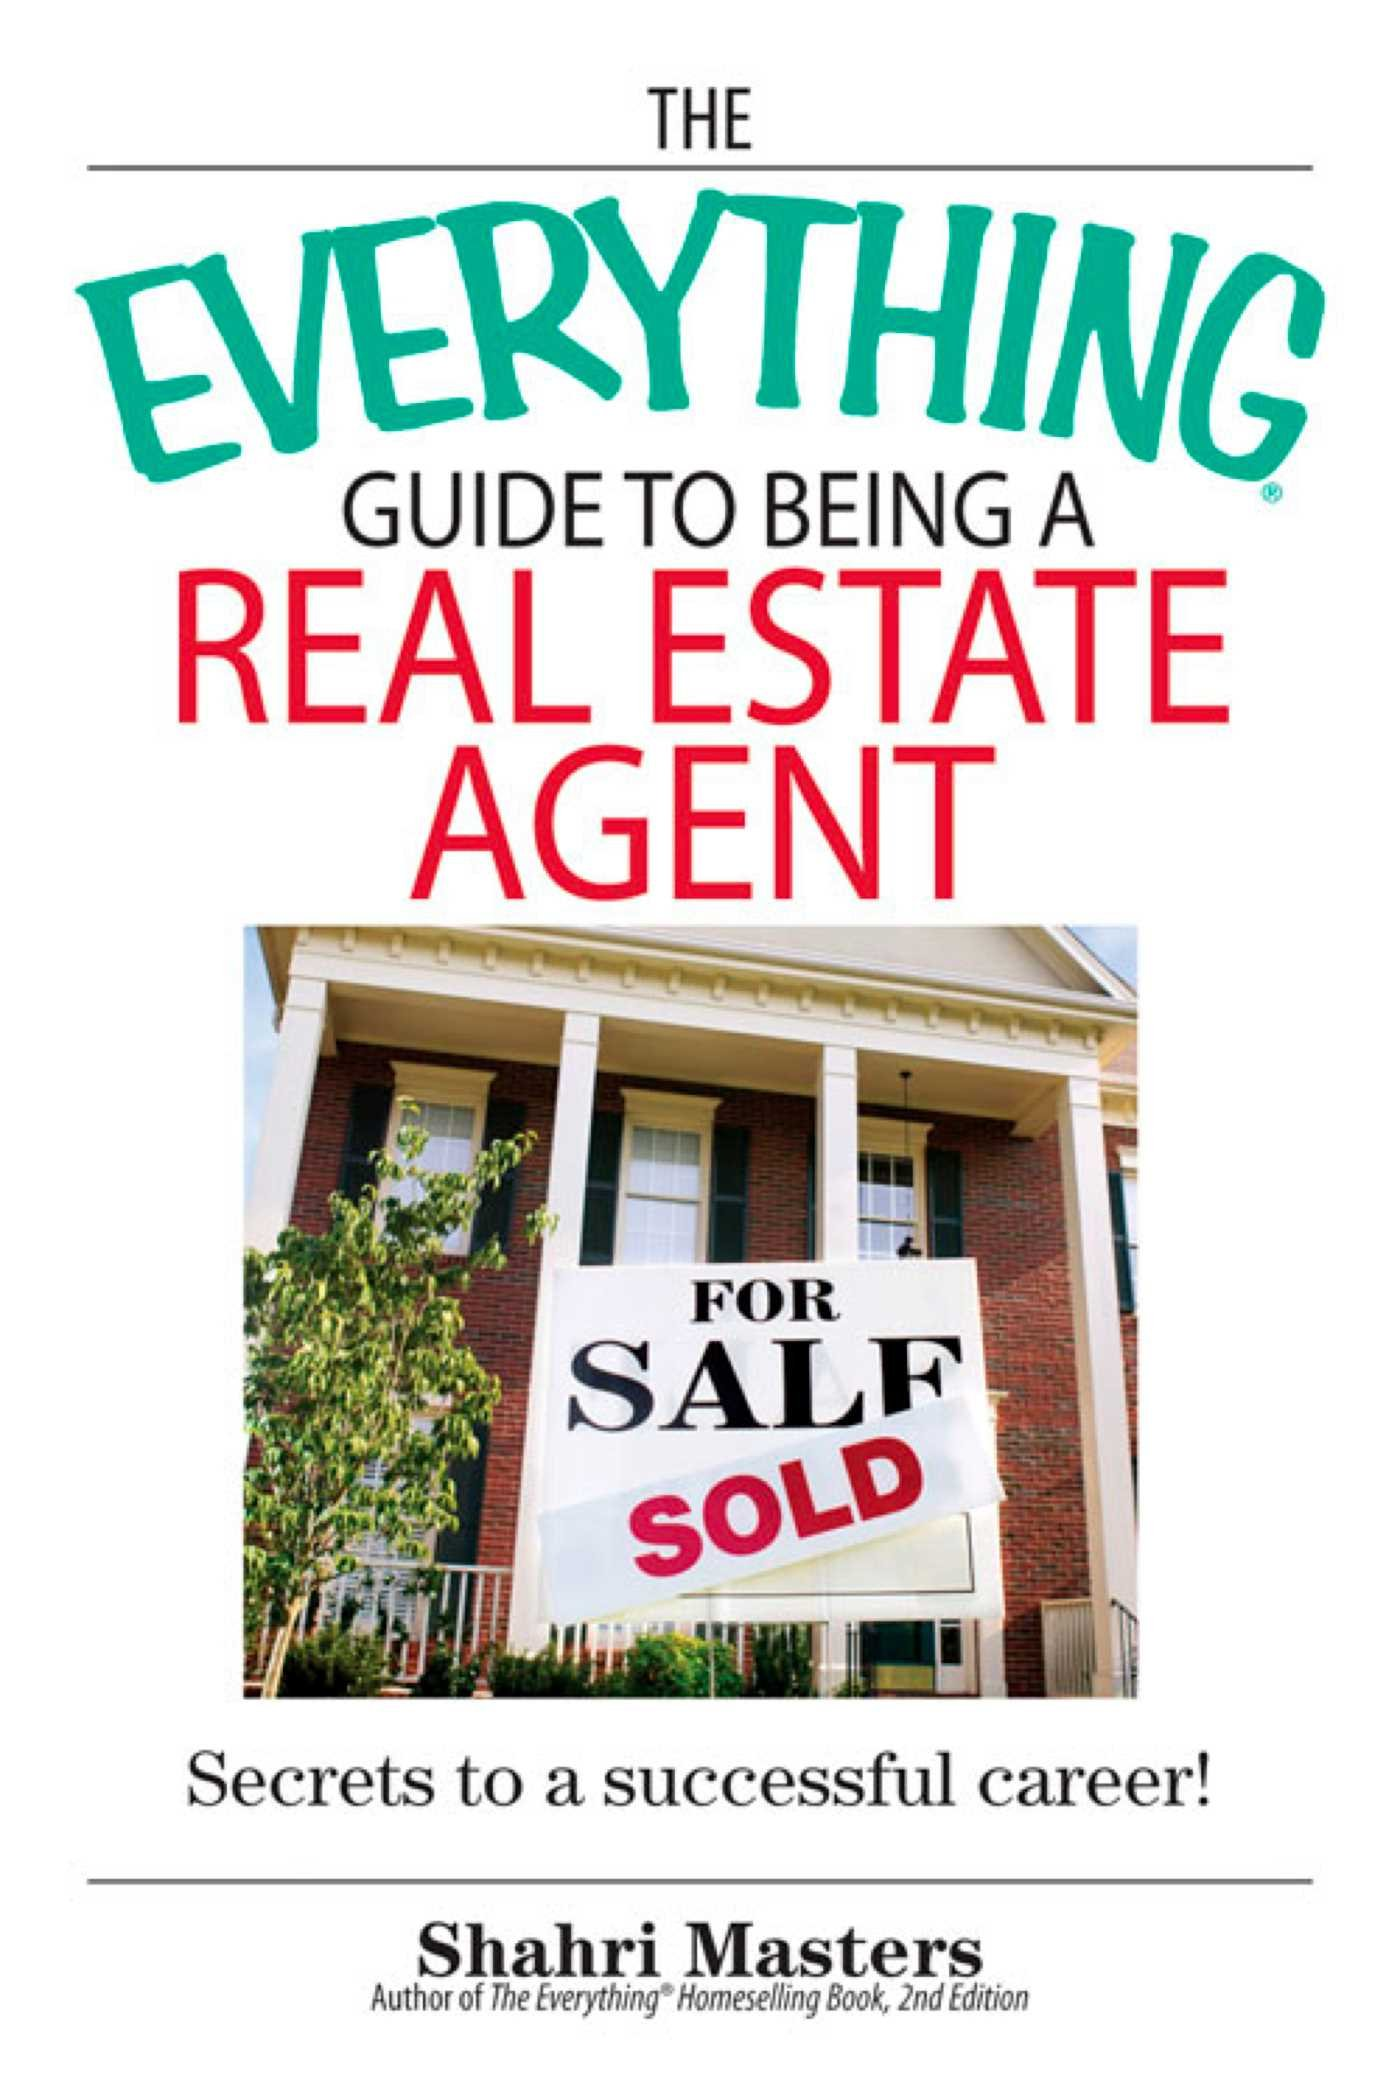 The Everything Guide To Being A Real Estate Agent: Secrets to a Successful Career! (Everything®)